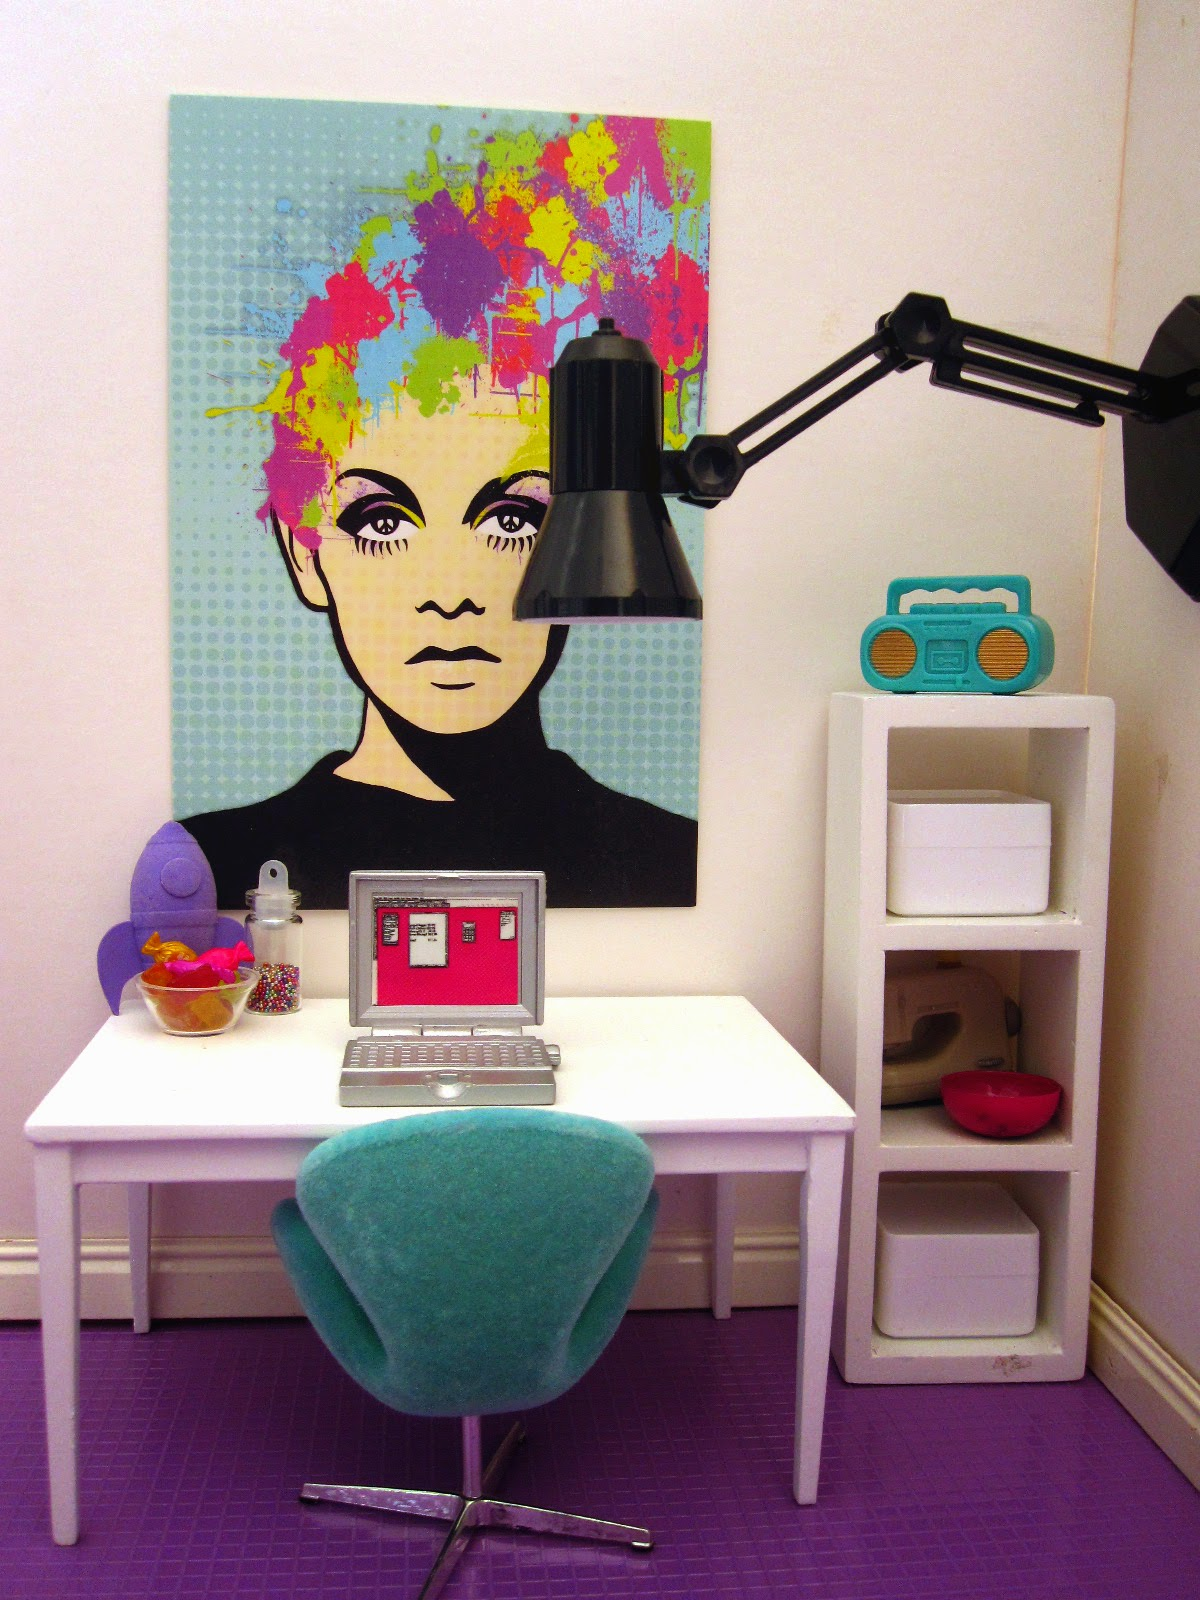 Modern dolls house miniature scene of a study with white walls and purple tiled flooring. A teal swan chairs sits in front of a white table with a laptop on it. A white shelving unitl is to the right and a large place lamp is attached to the right-hand wall.